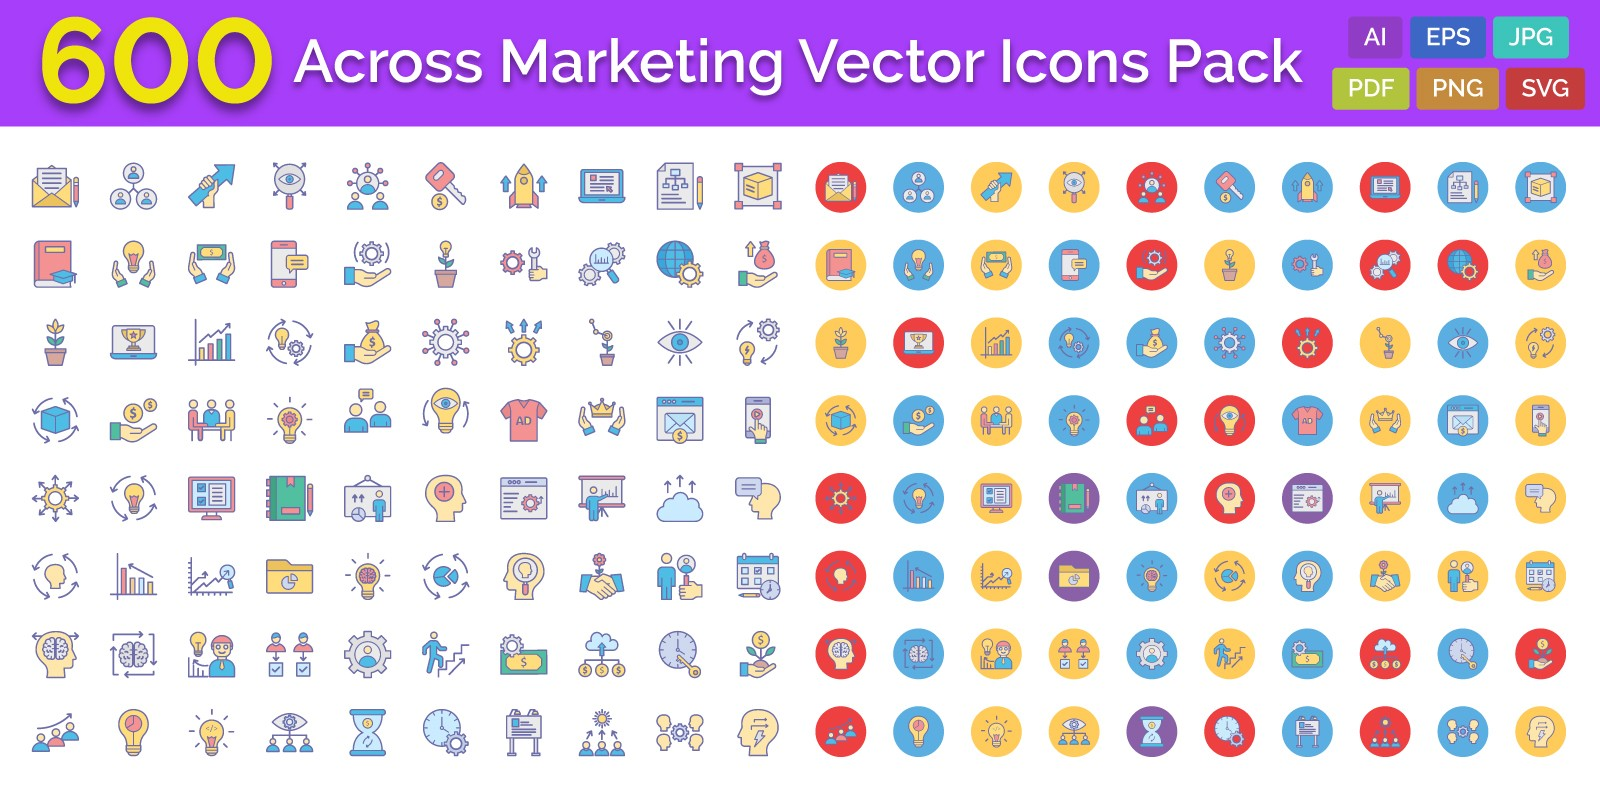 600 Cross Marketing Vector Icons Pack